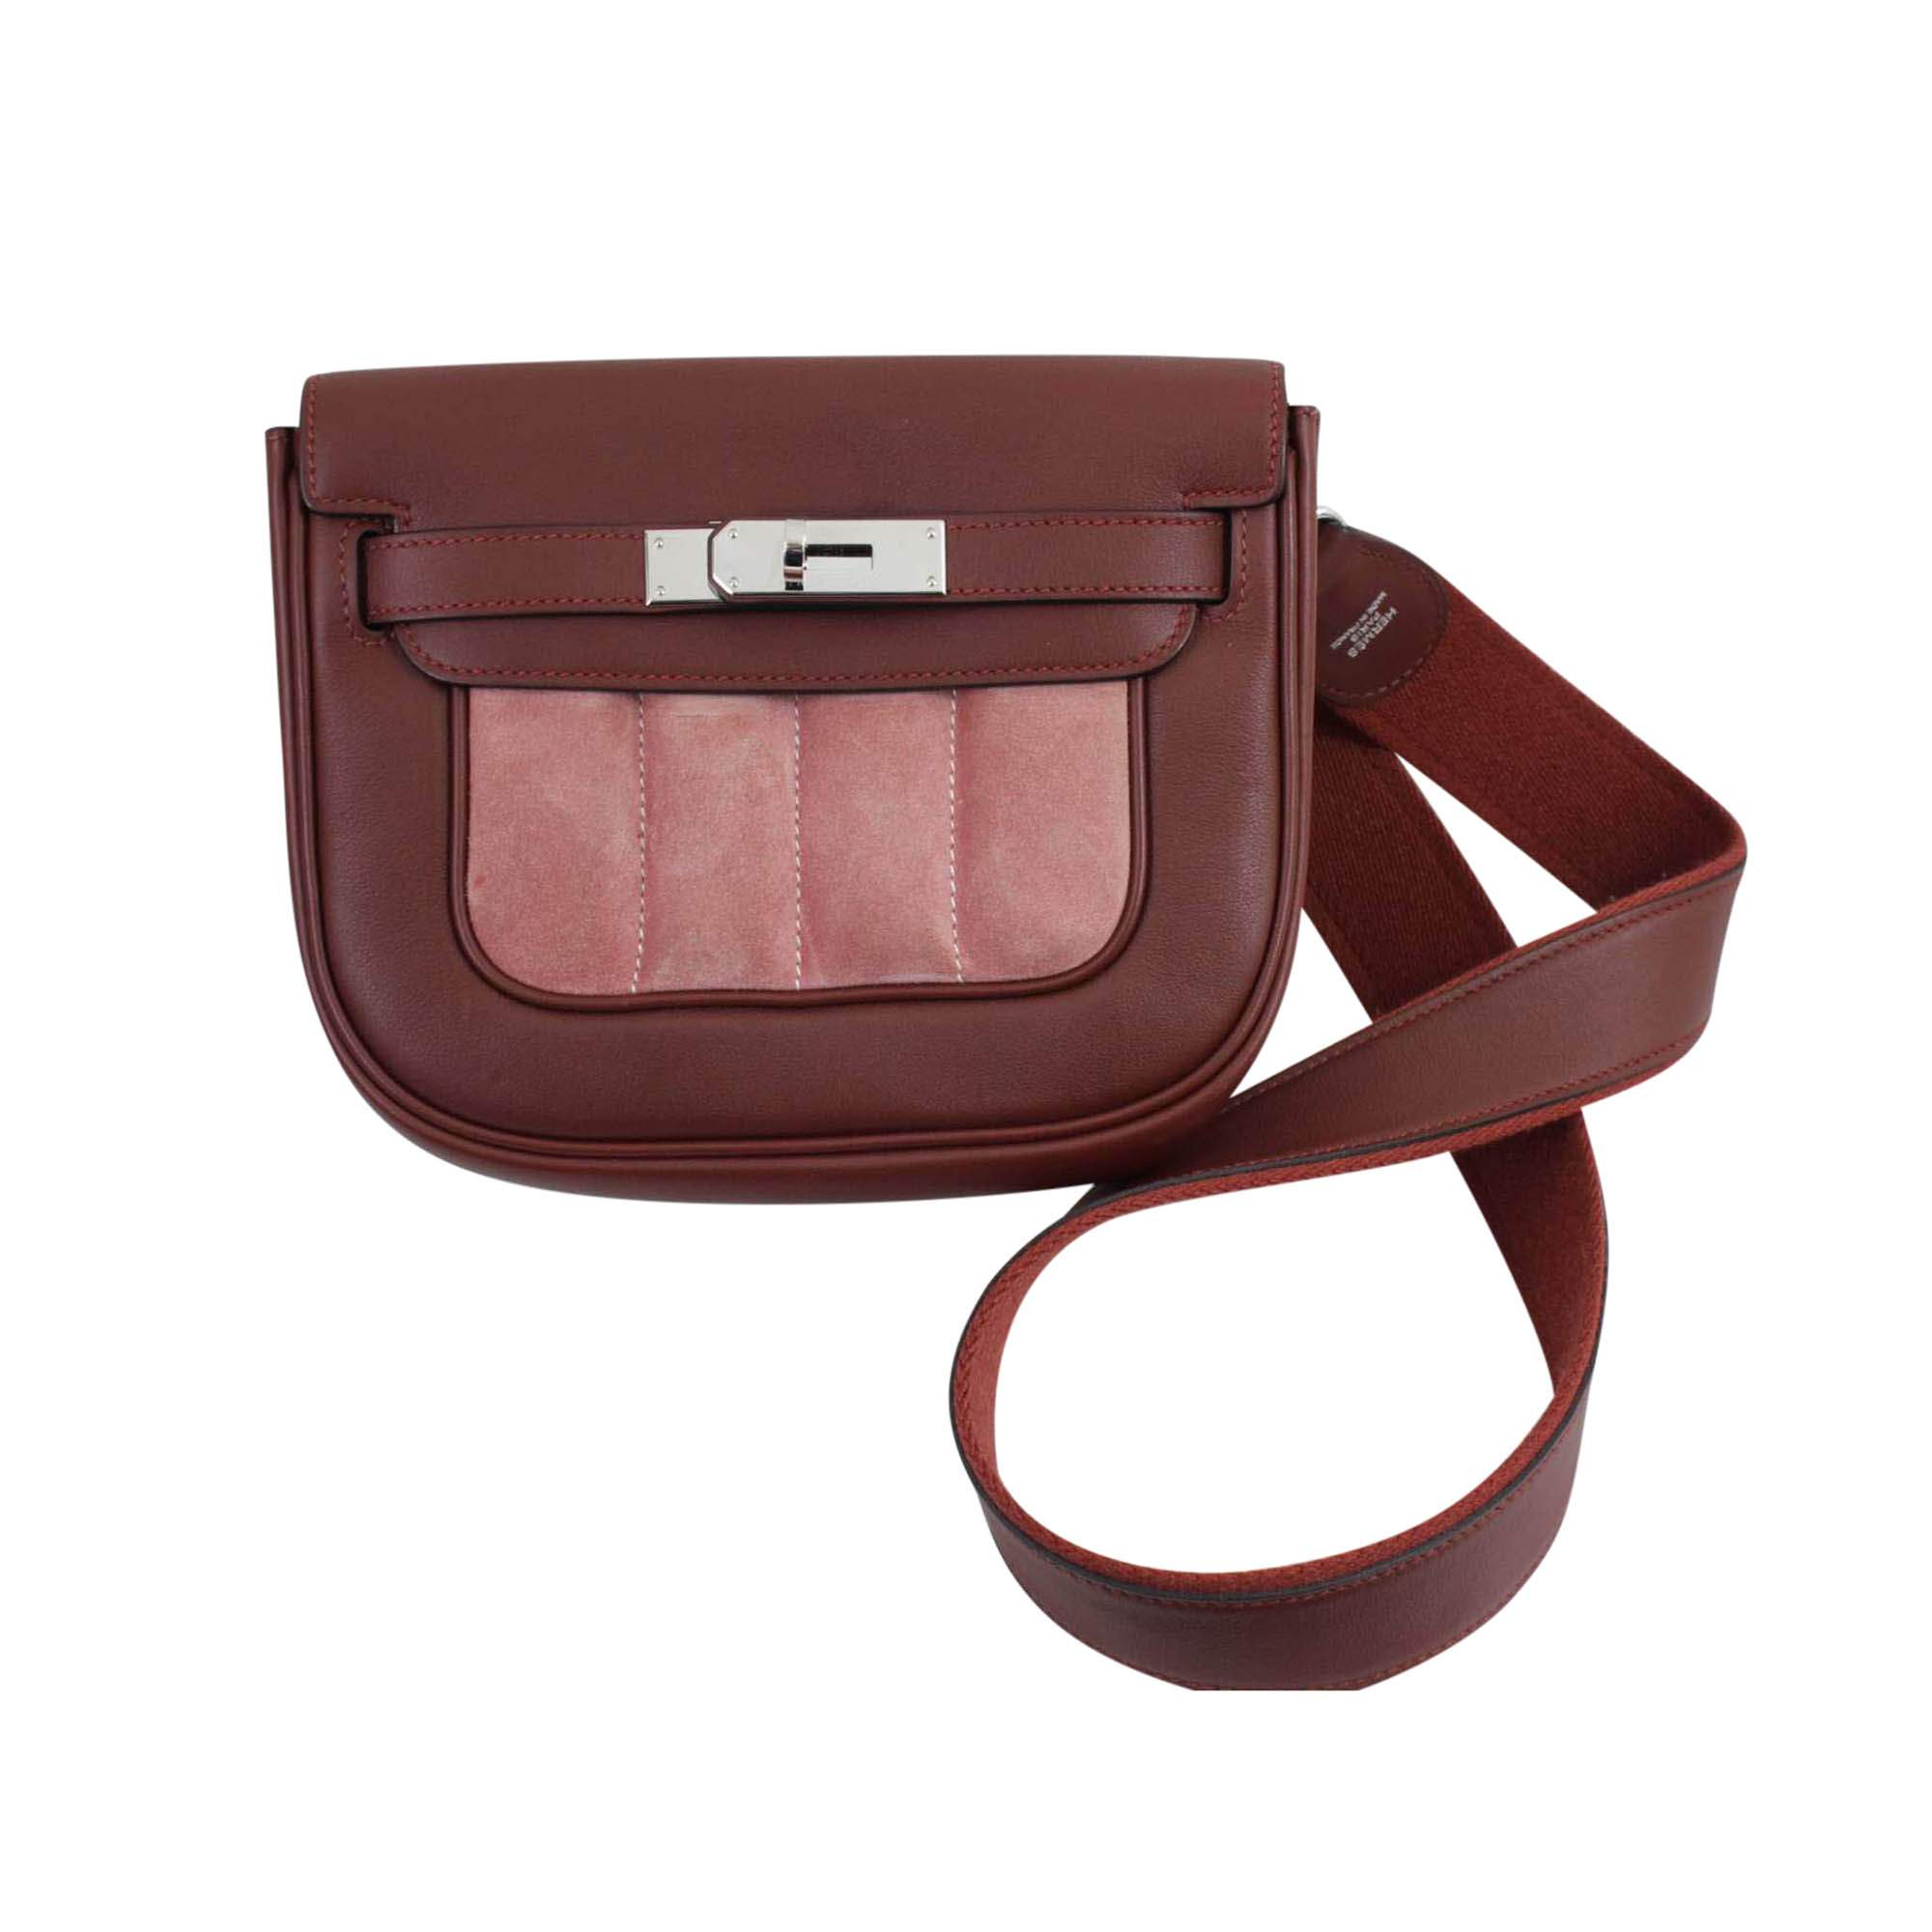 6e435896cca Camel Vintage Cross-Body Leather Pouch  895 · Berline Bag in burgundy swift  Leather-0